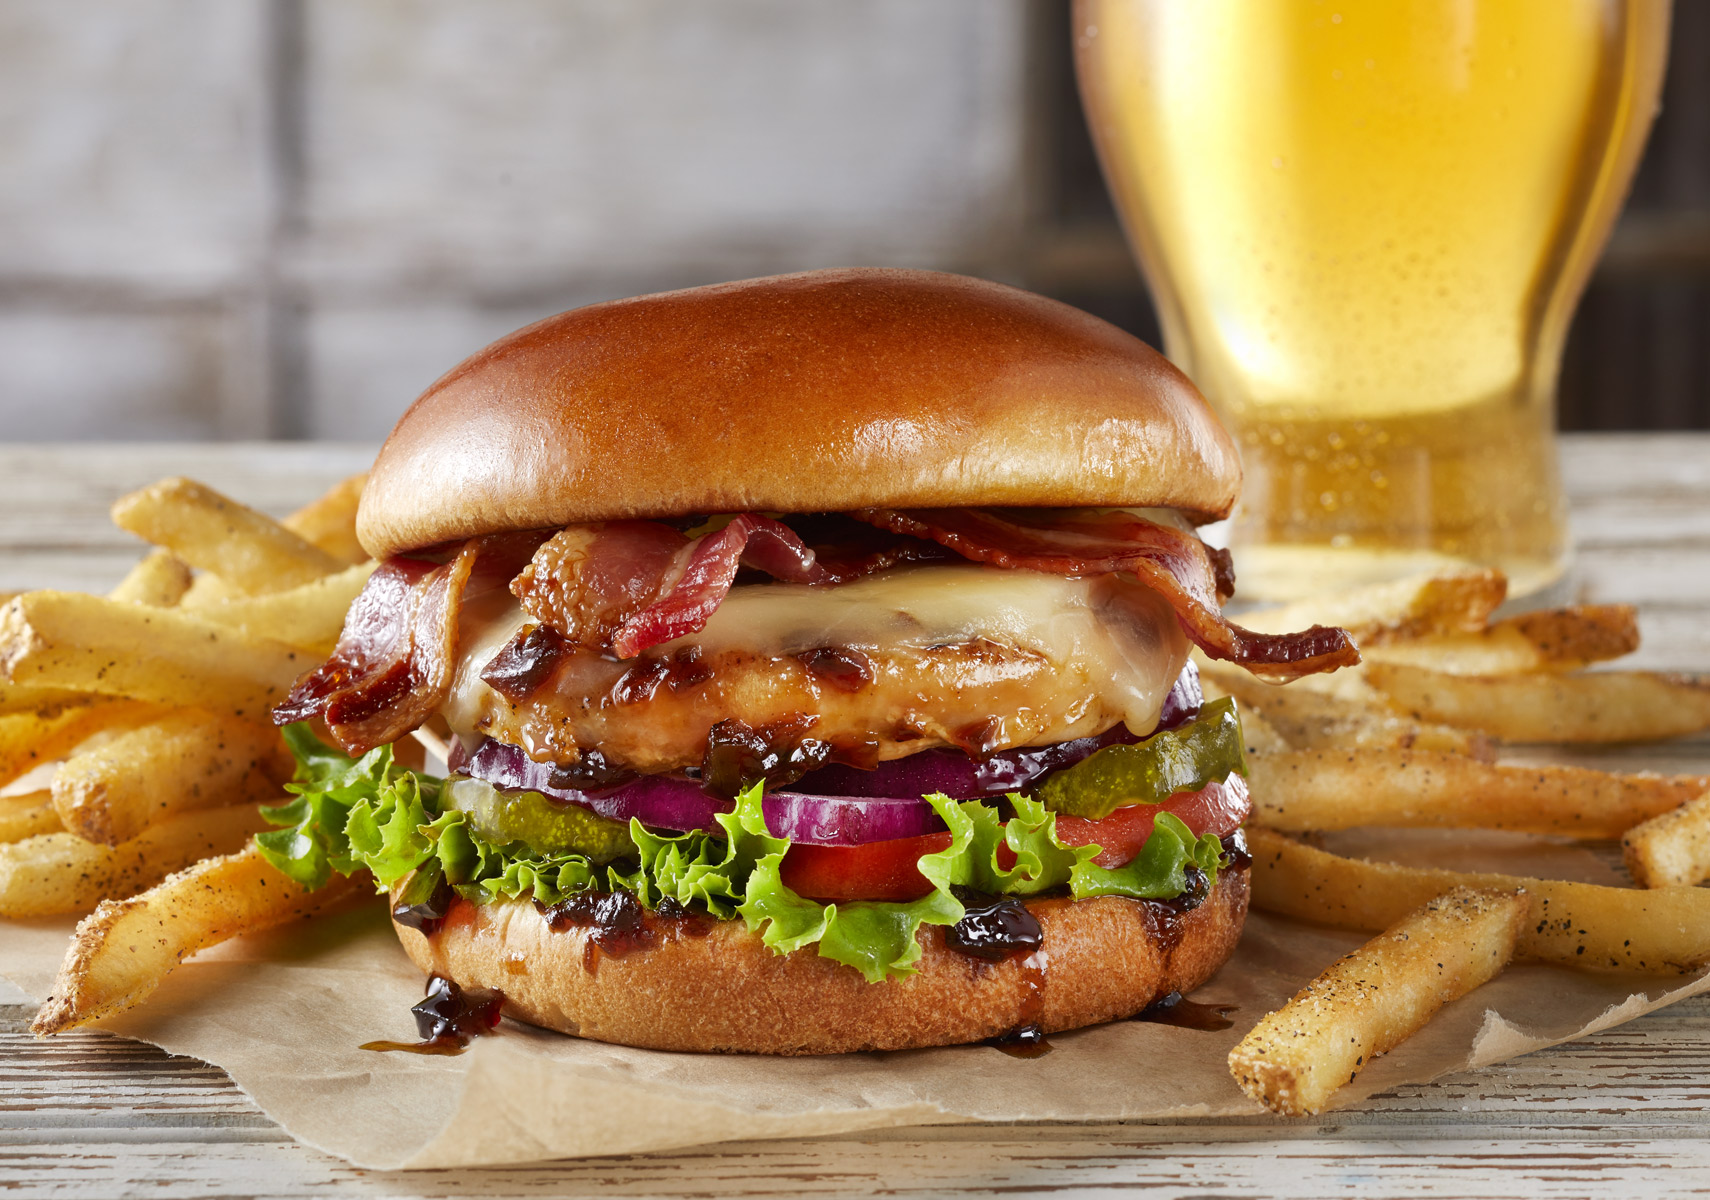 Tgif_Whiskey-Glazed-Chick-Sandwich_Beer_CK-apf